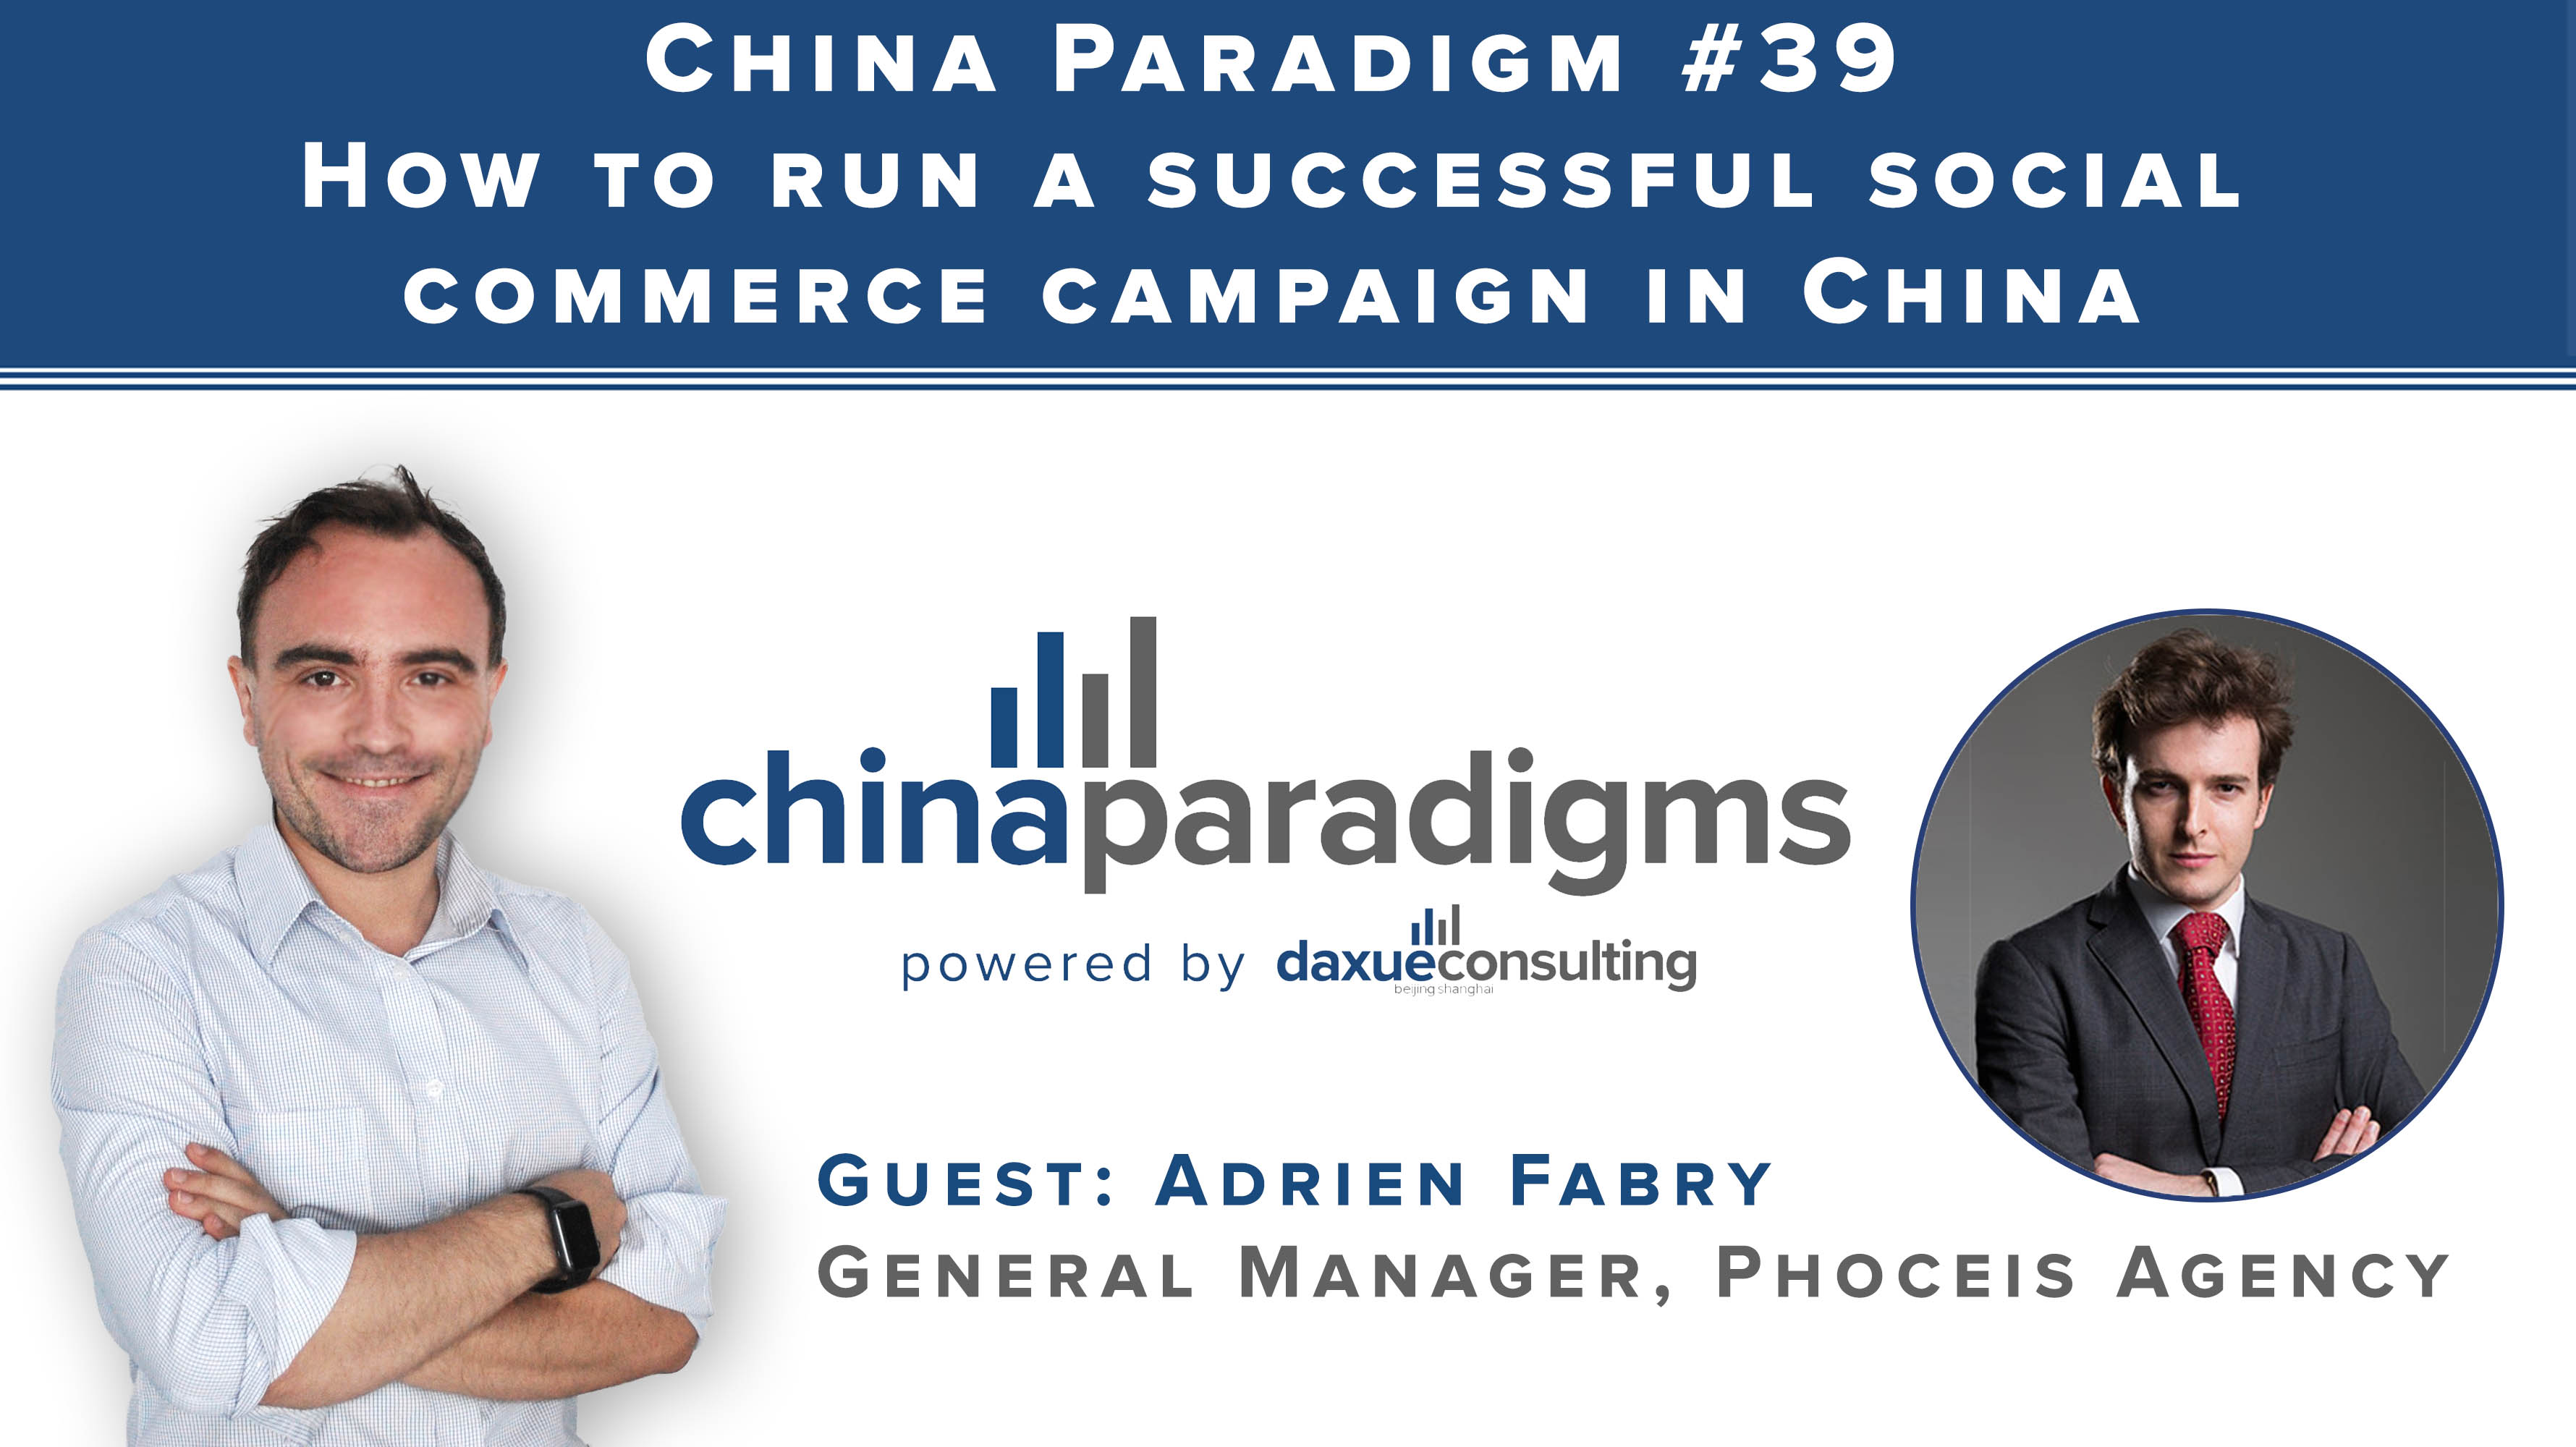 social commerce campaign China